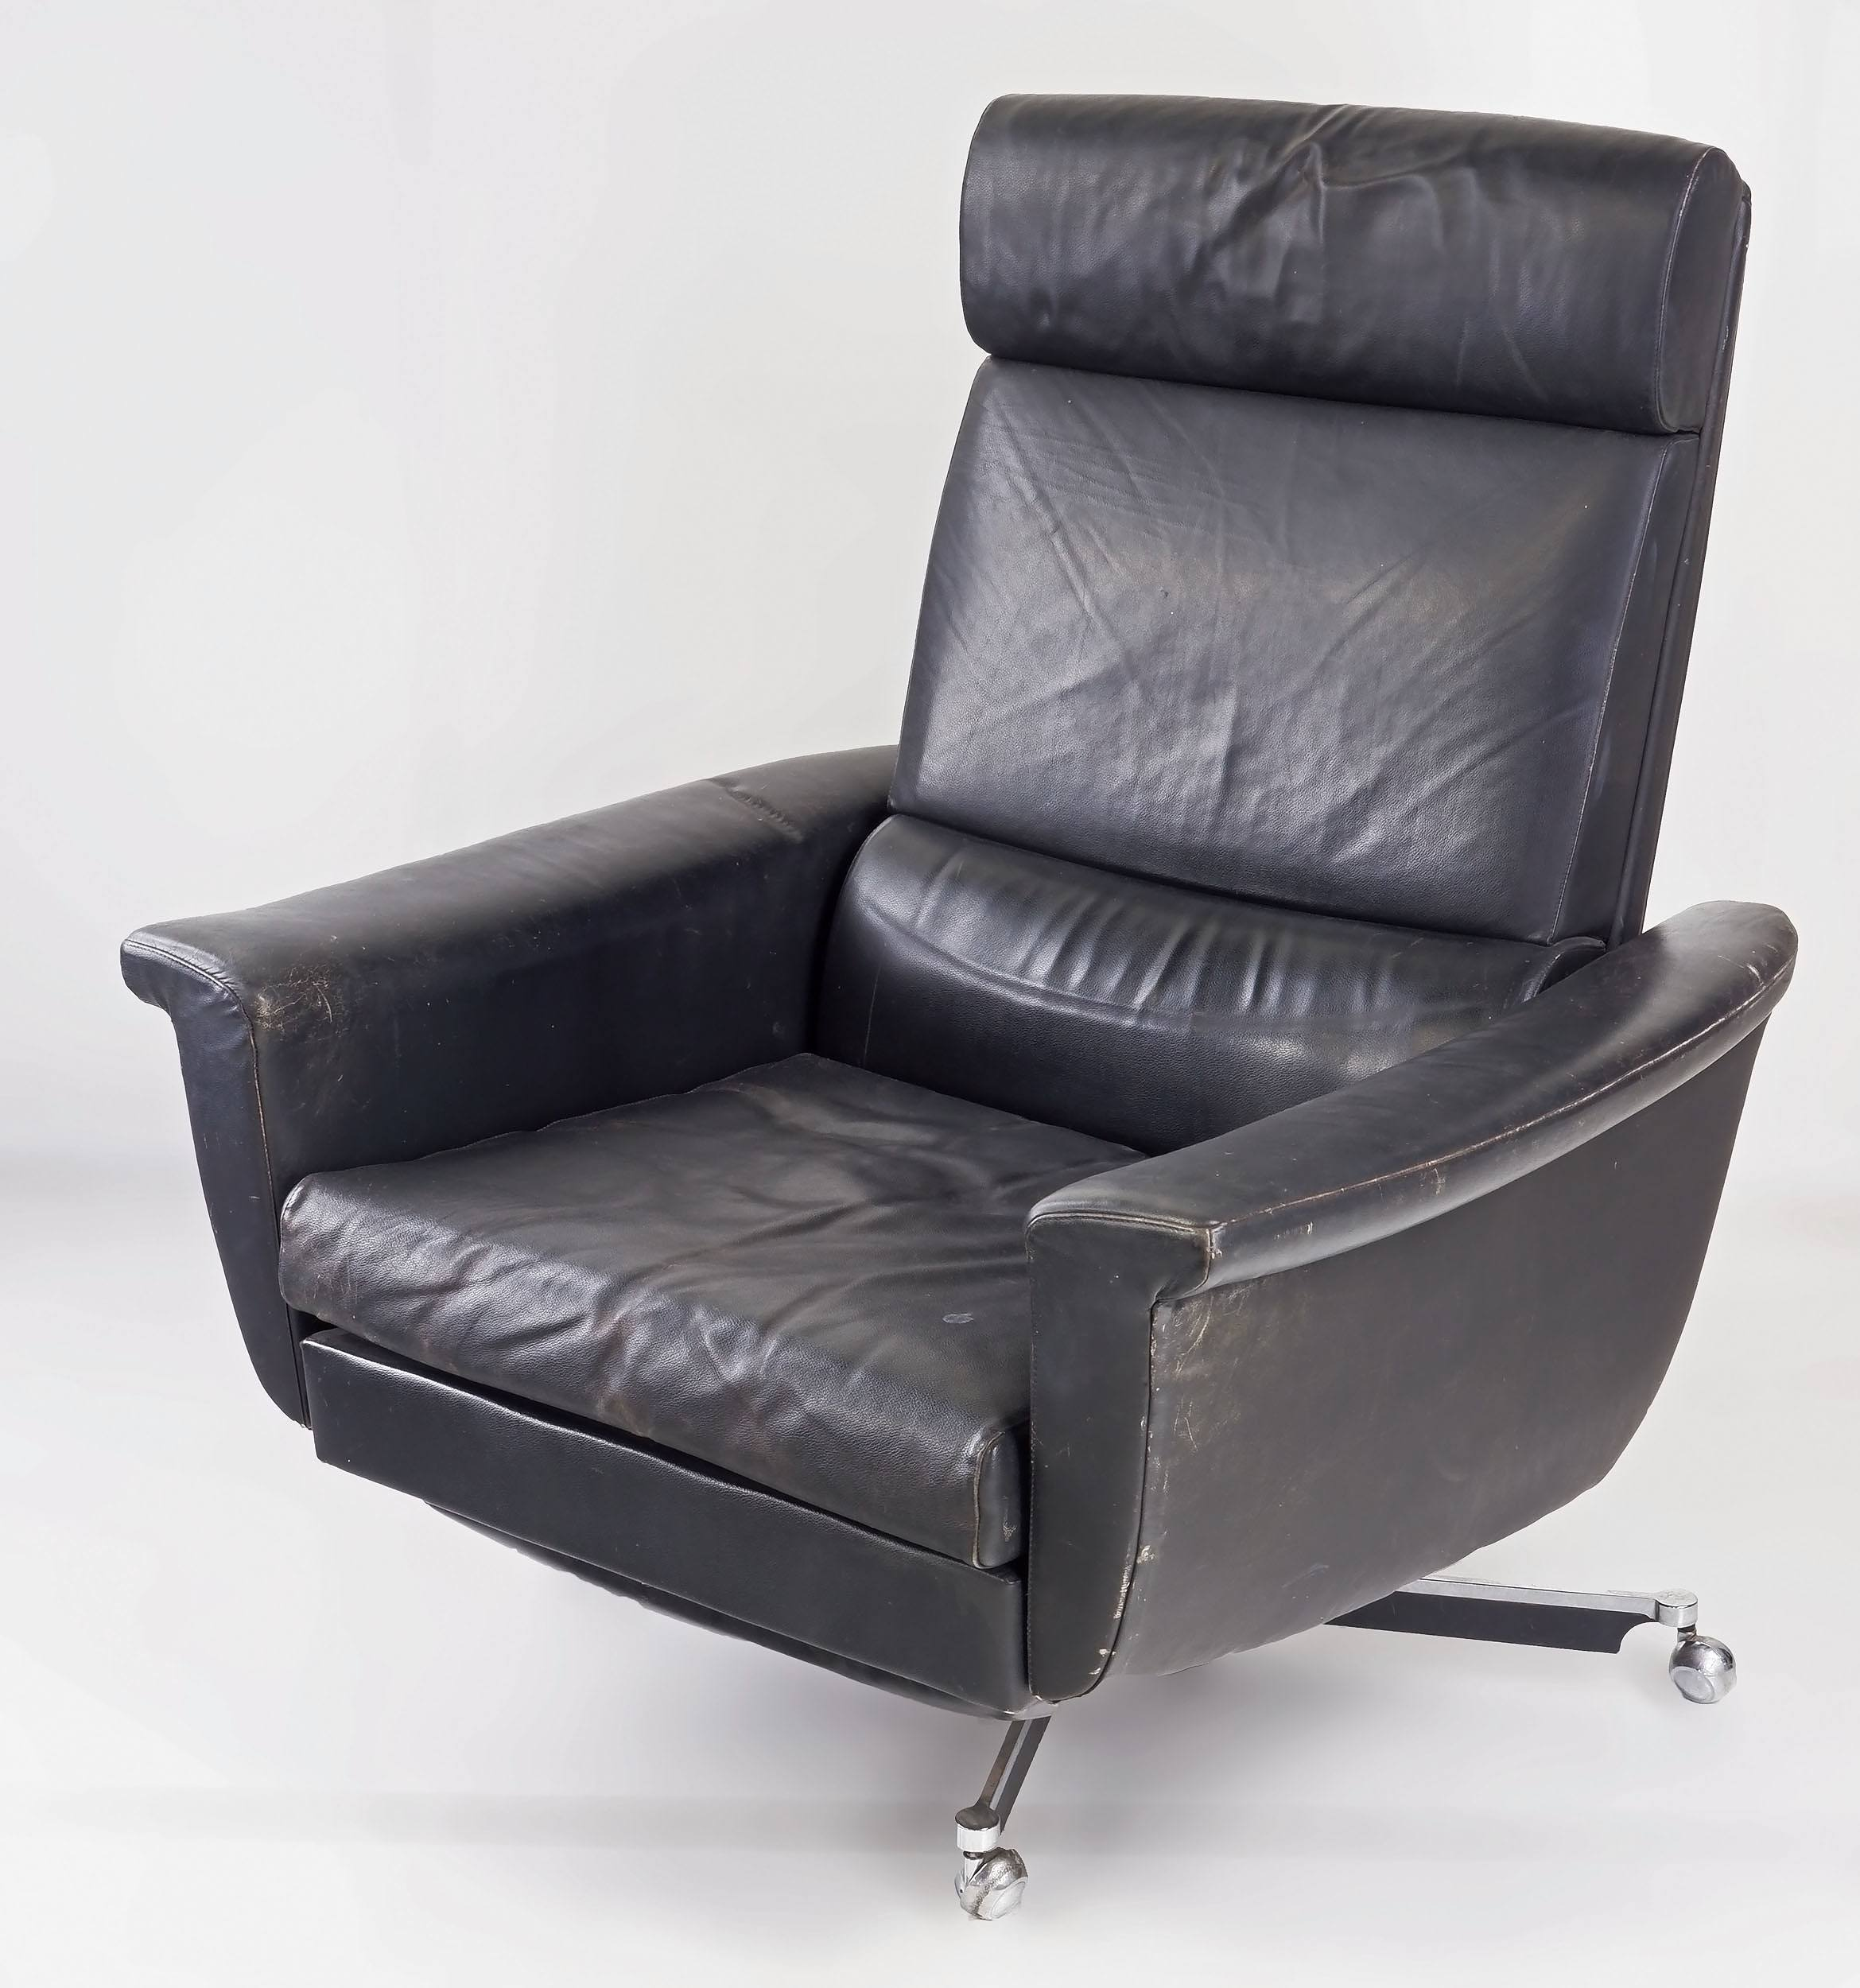 '1970s Danish Leather Reclining Swivel Chair, Purchased in Denmark'